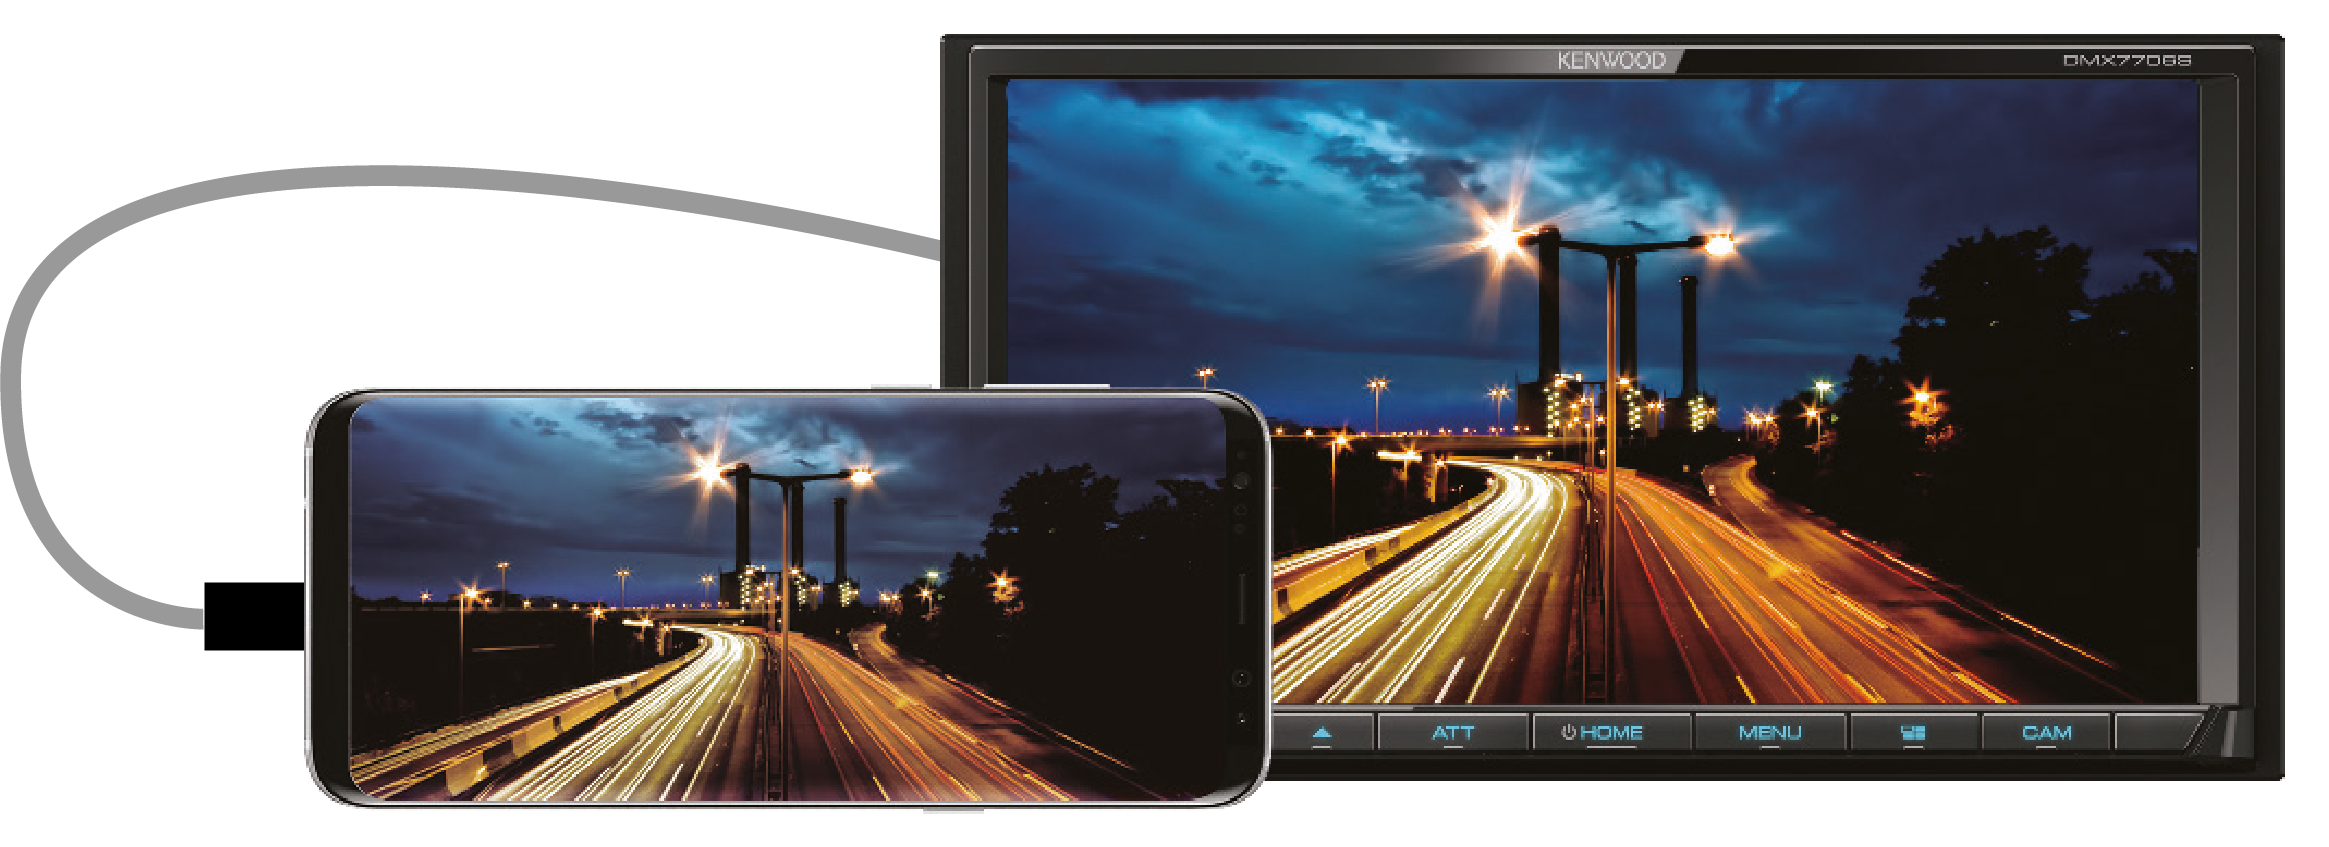 USB mirroring for Android